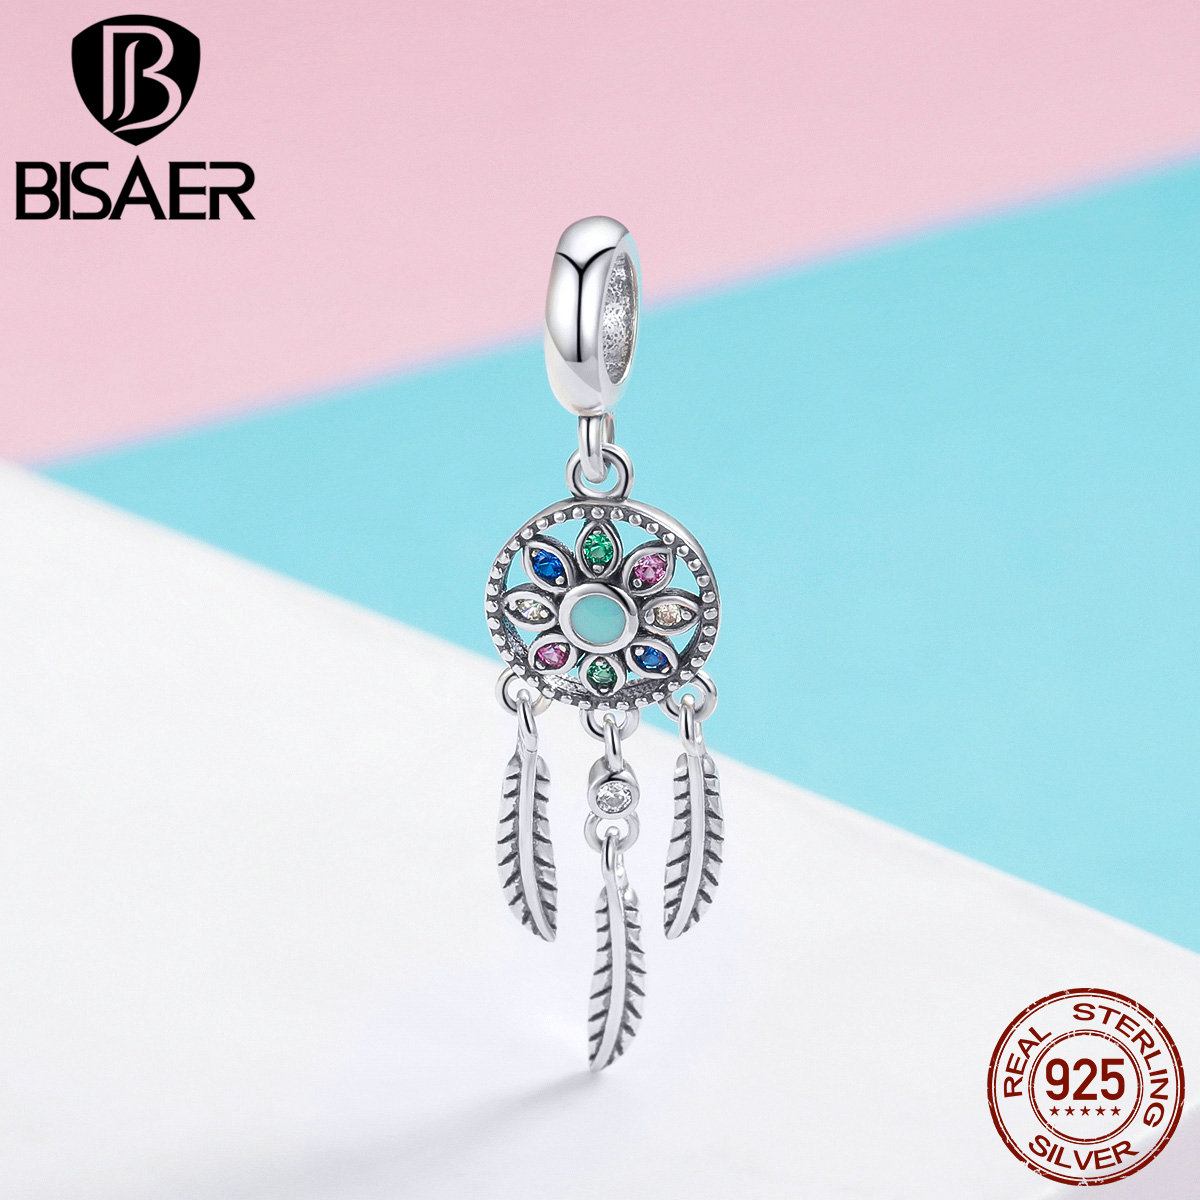 BISAER 925 Sterling Silver Bohemia Dream Catcher Vintage Charms Beads Fit Bracelet Beads For Silver 925 Jewelry Making ECC961